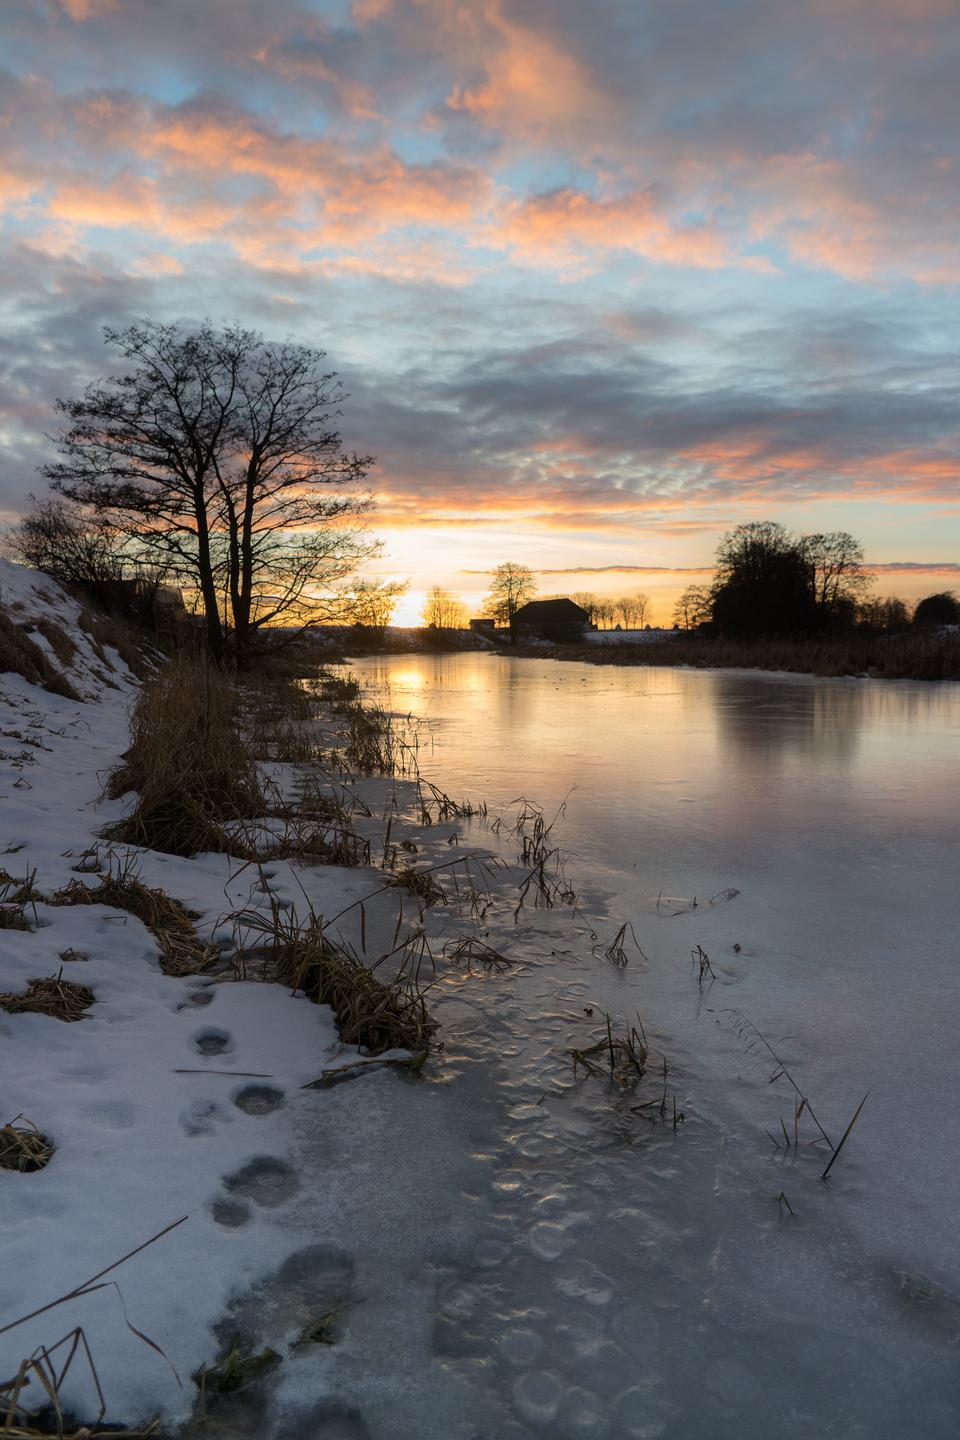 Free download high resolution image - free image free photo free stock image public domain picture  Winter forest on the river at sunset